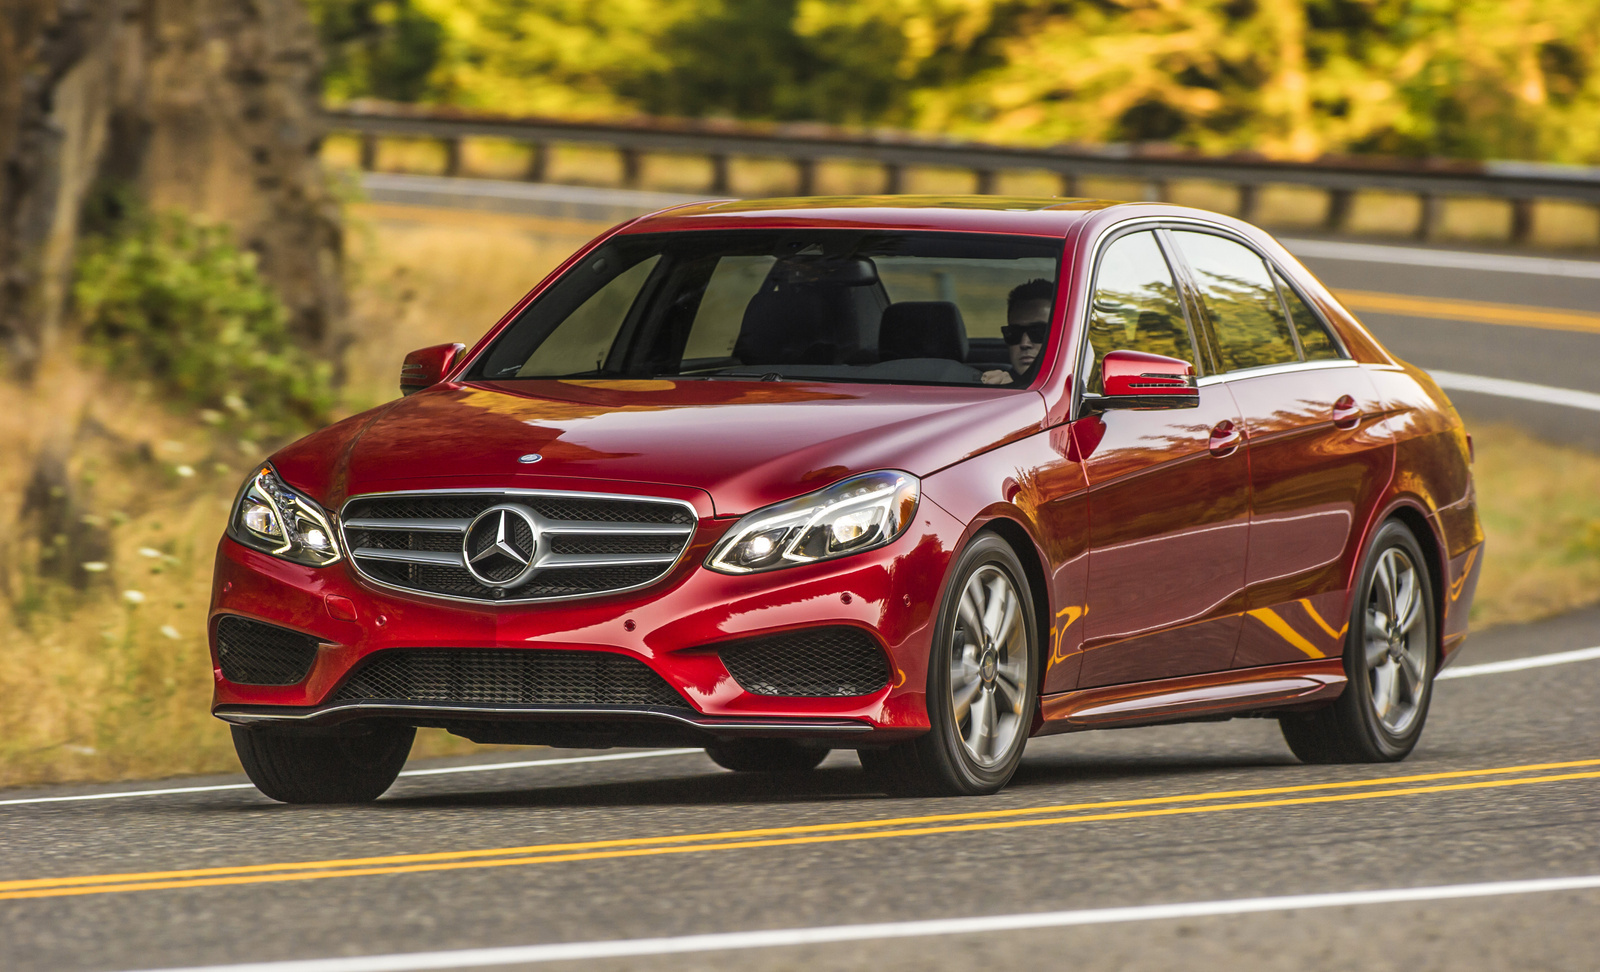 Mercedes-Benz E-Class: Problems with the side windows